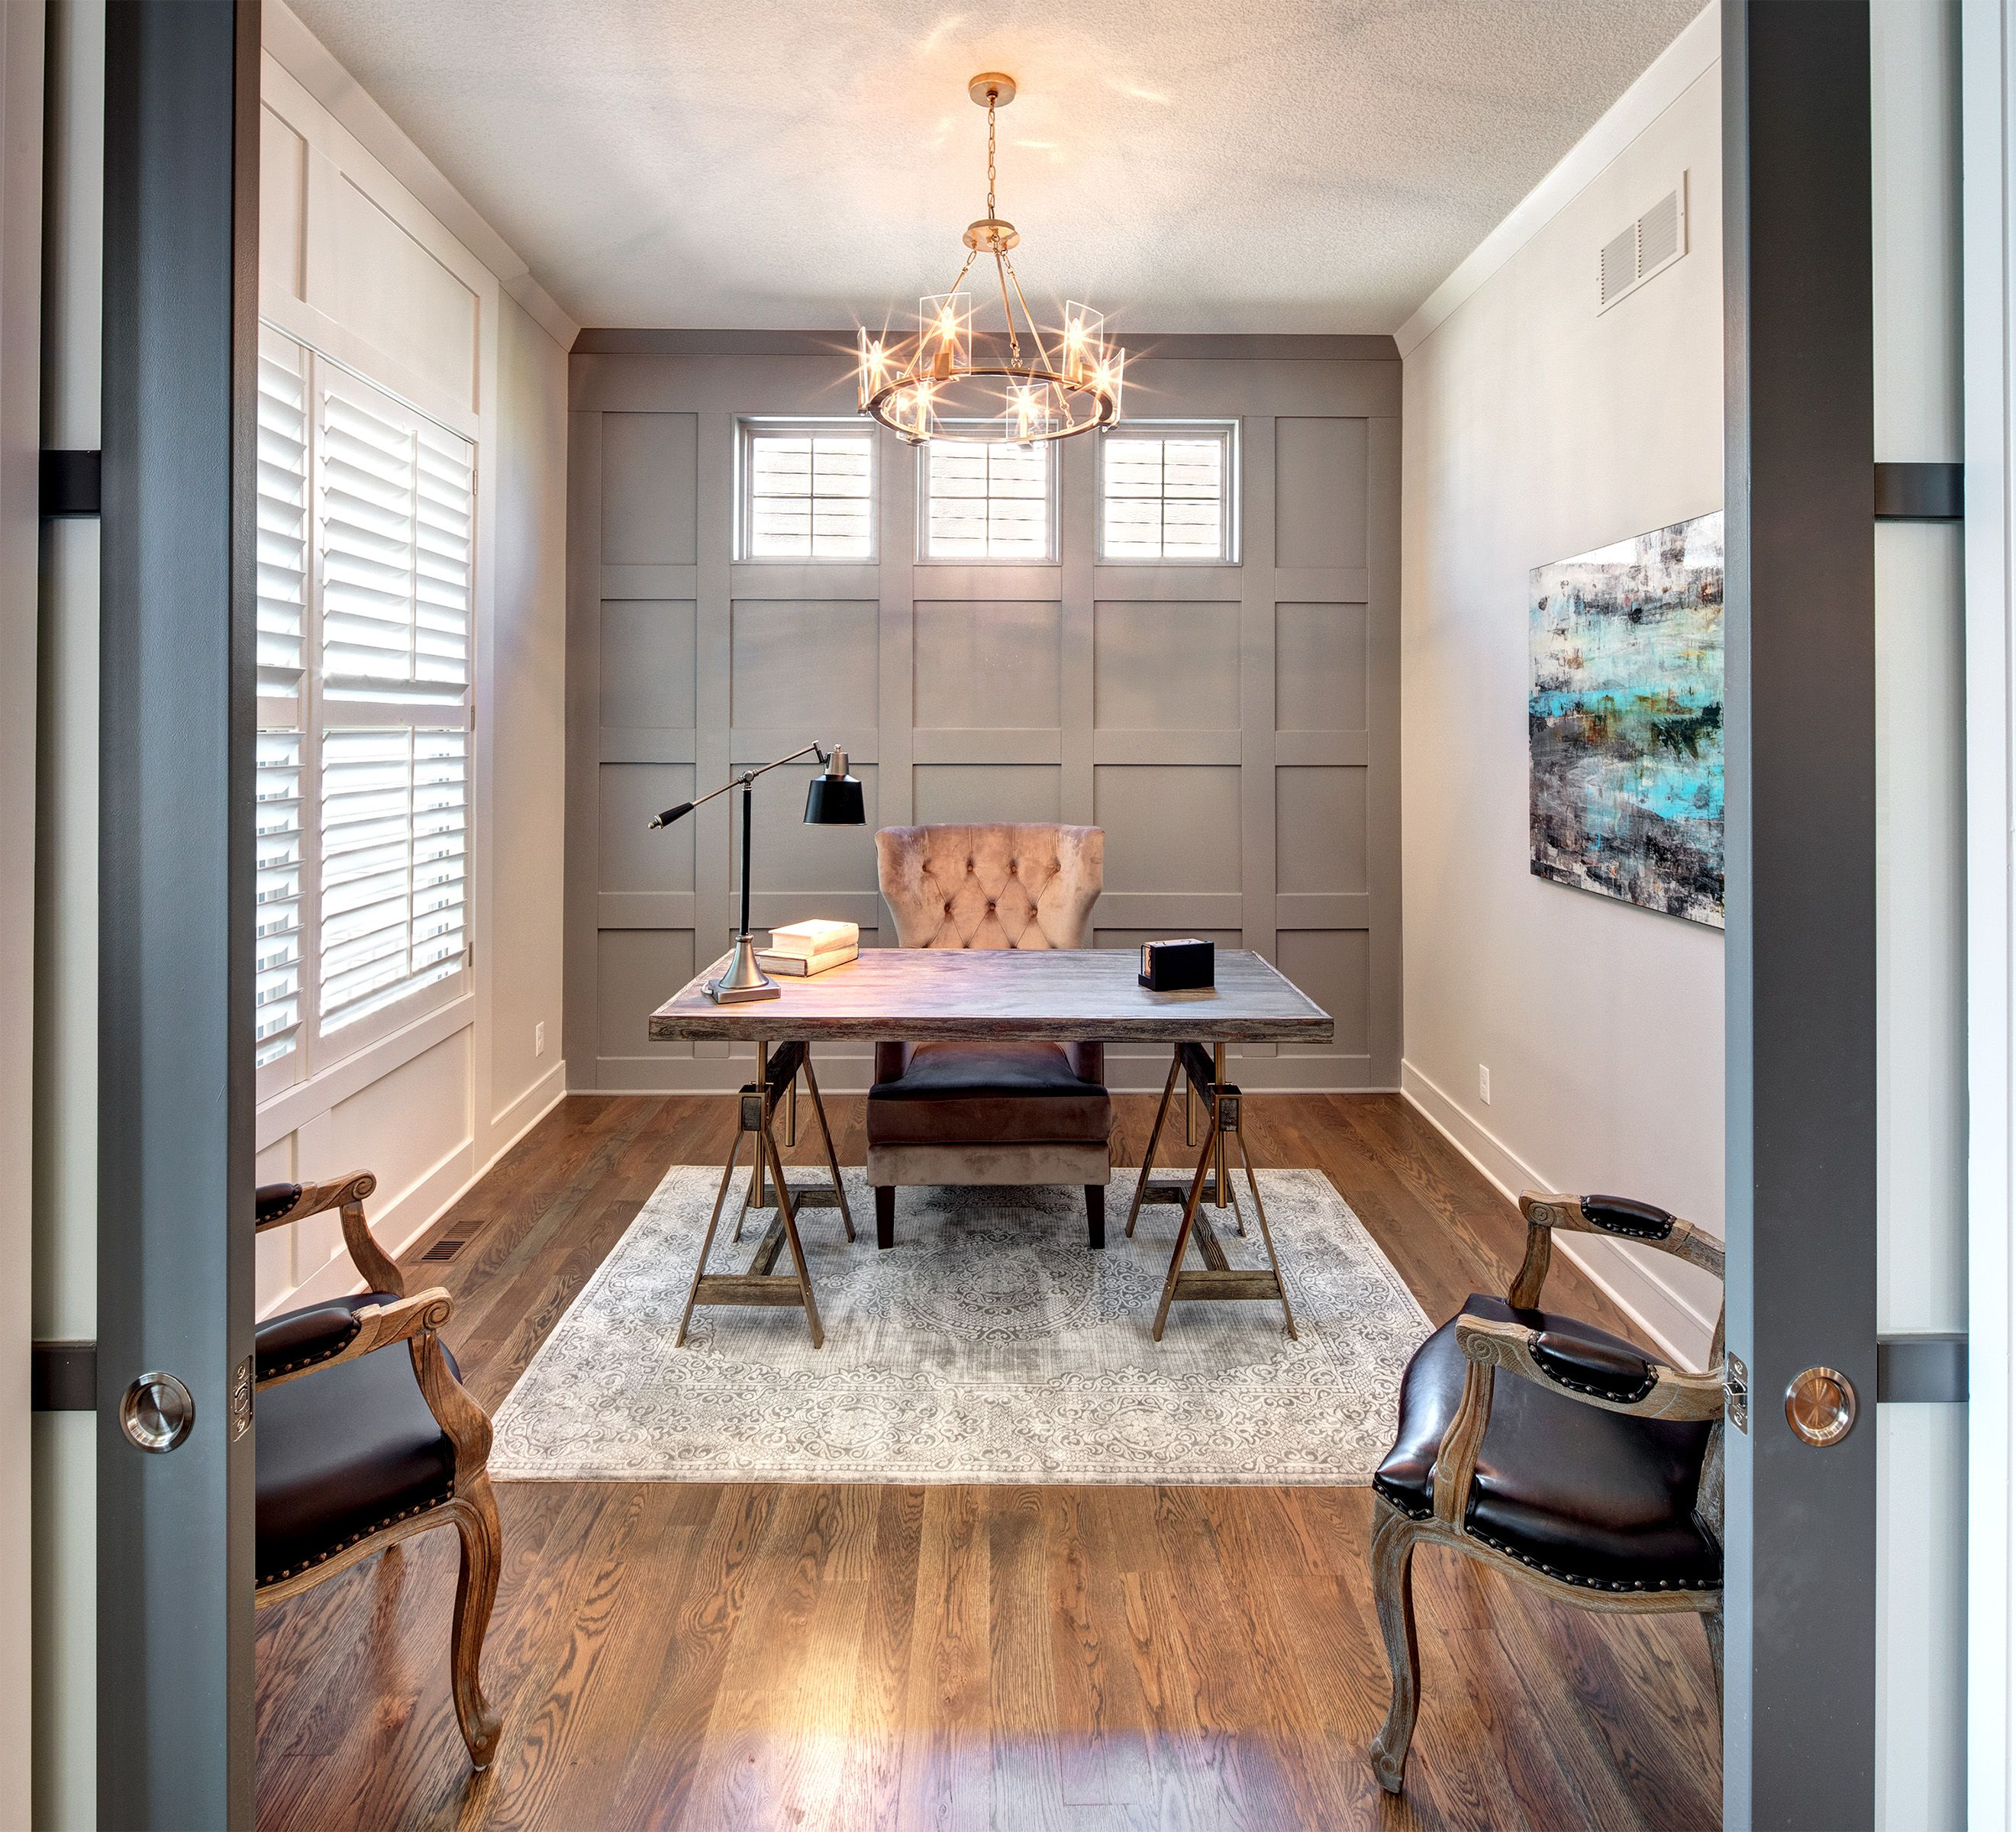 Explore some of our beautiful home interior designs from models to homeowner   selections in builder interiors gallery also best dream house images diy ideas for decor rh pinterest